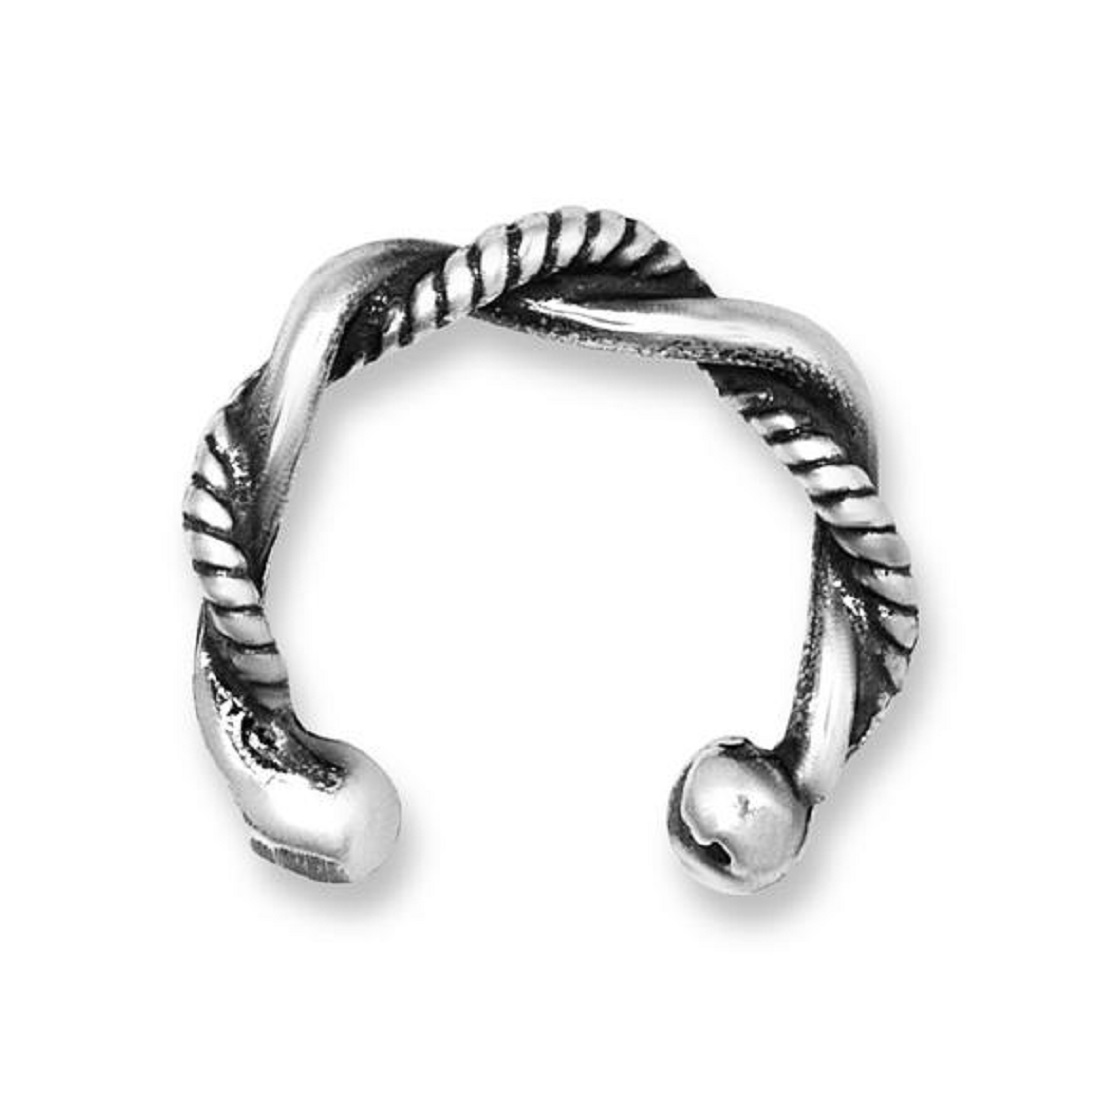 FREE WITH COUPON STERLING SILVER EAR CUFF